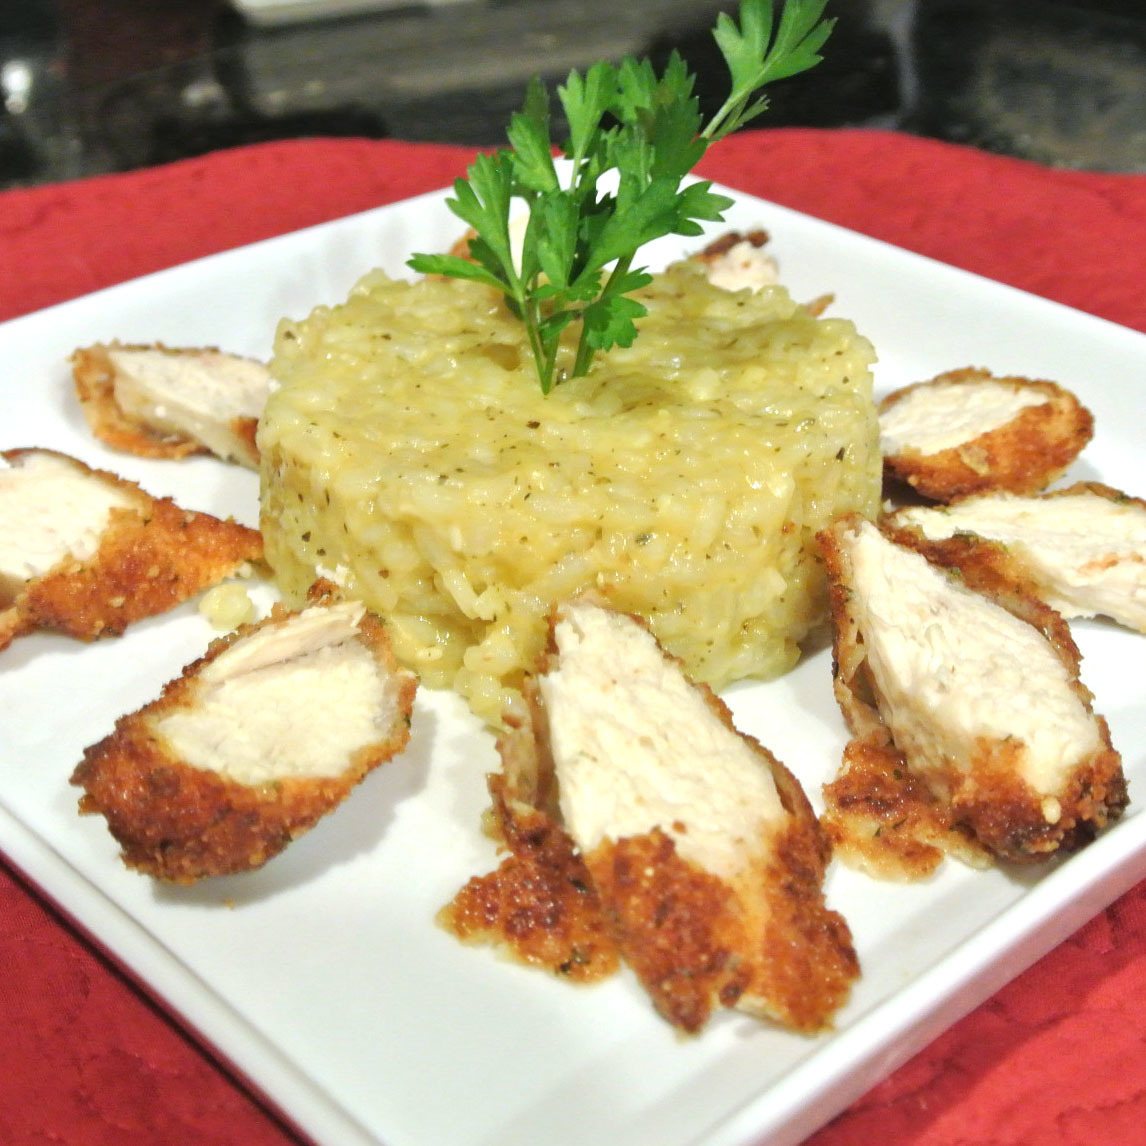 Parmesan Crusted Chicken with Garlic Herb Risotto